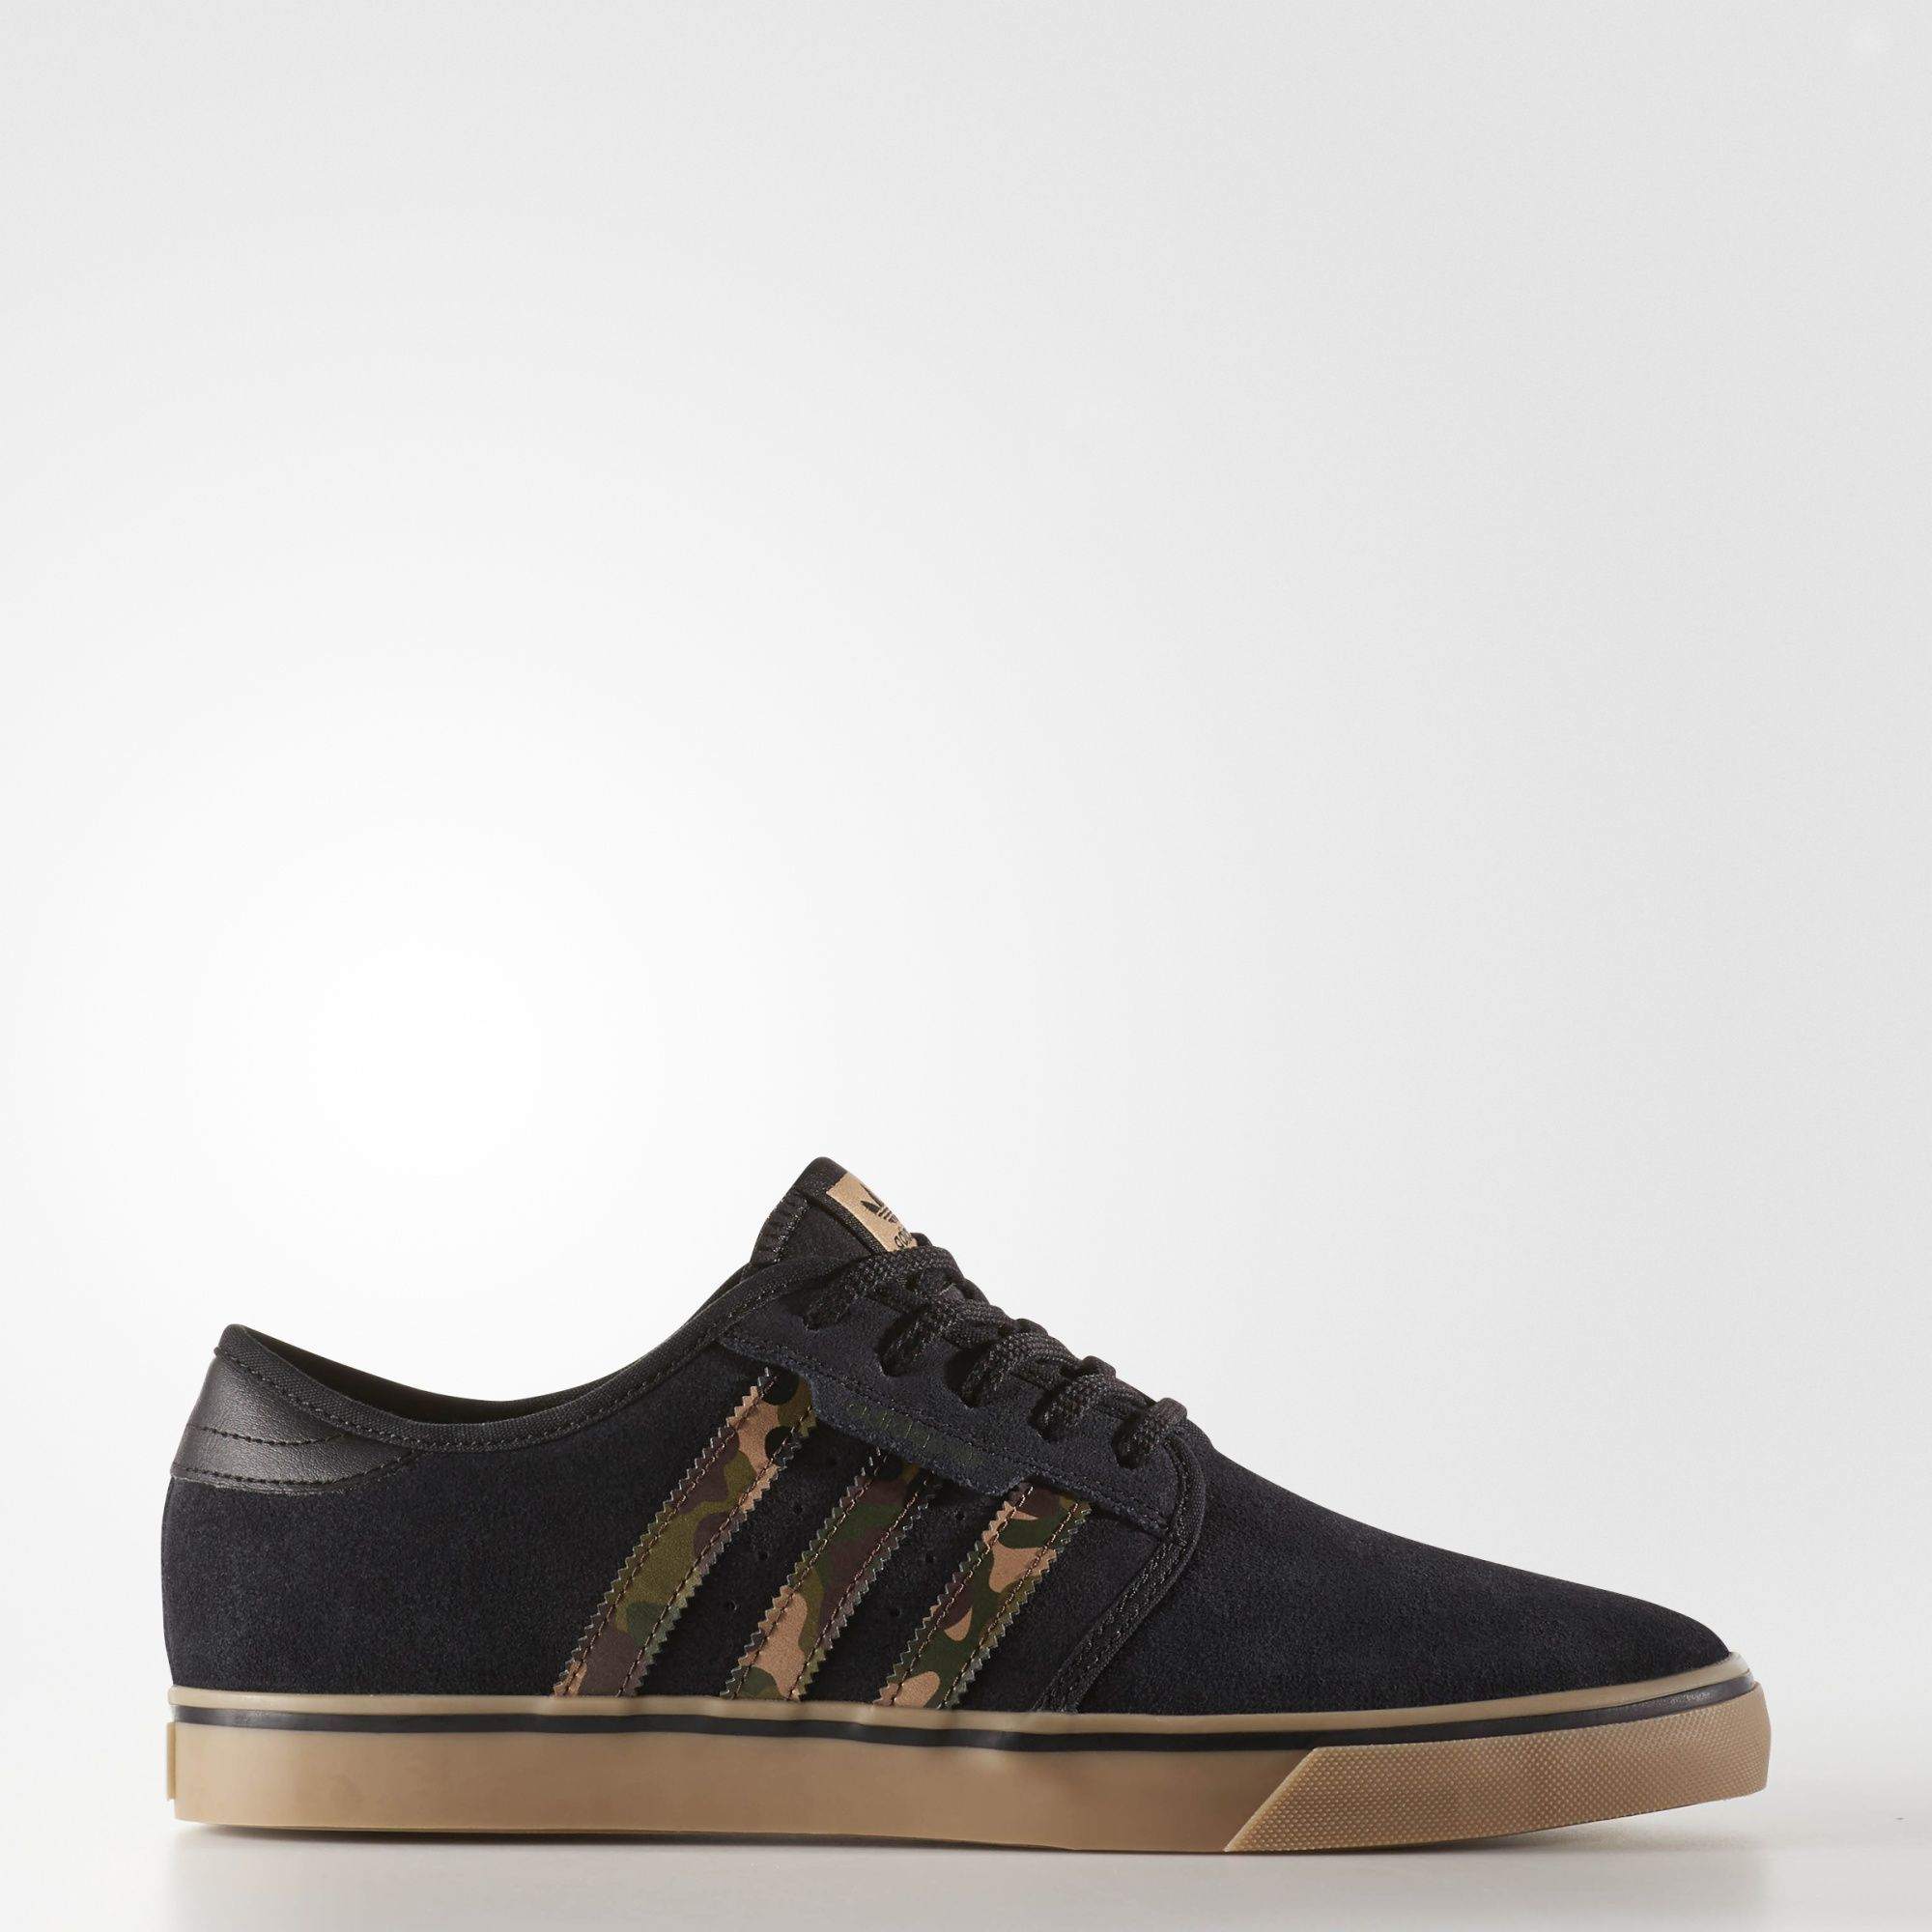 Adidas Seeley Pinterest Cramos Shoes Shoes Y rfqO1r